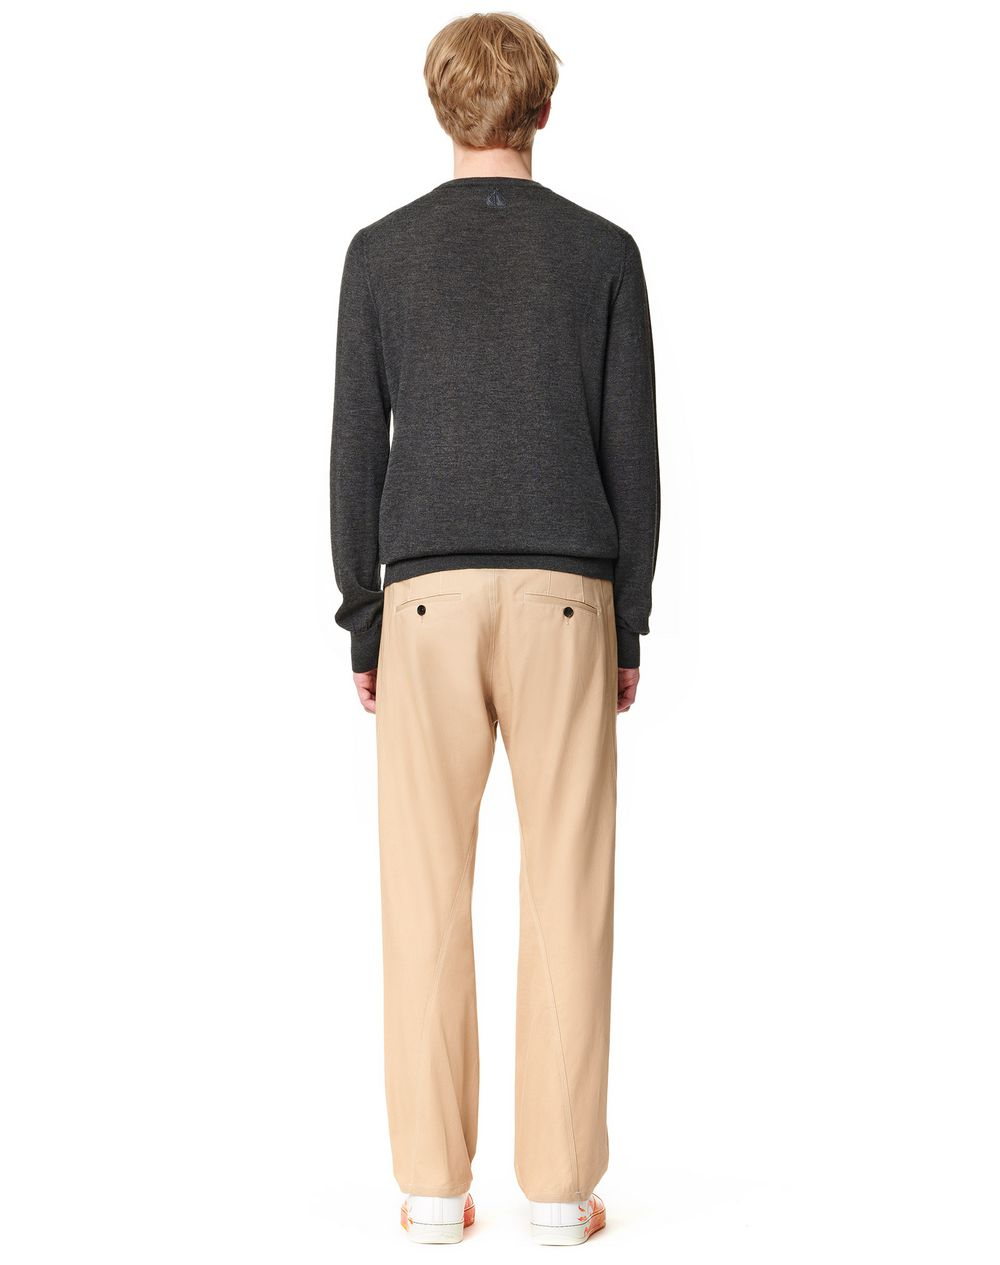 CASHMERE KNITTED SWEATER - Lanvin